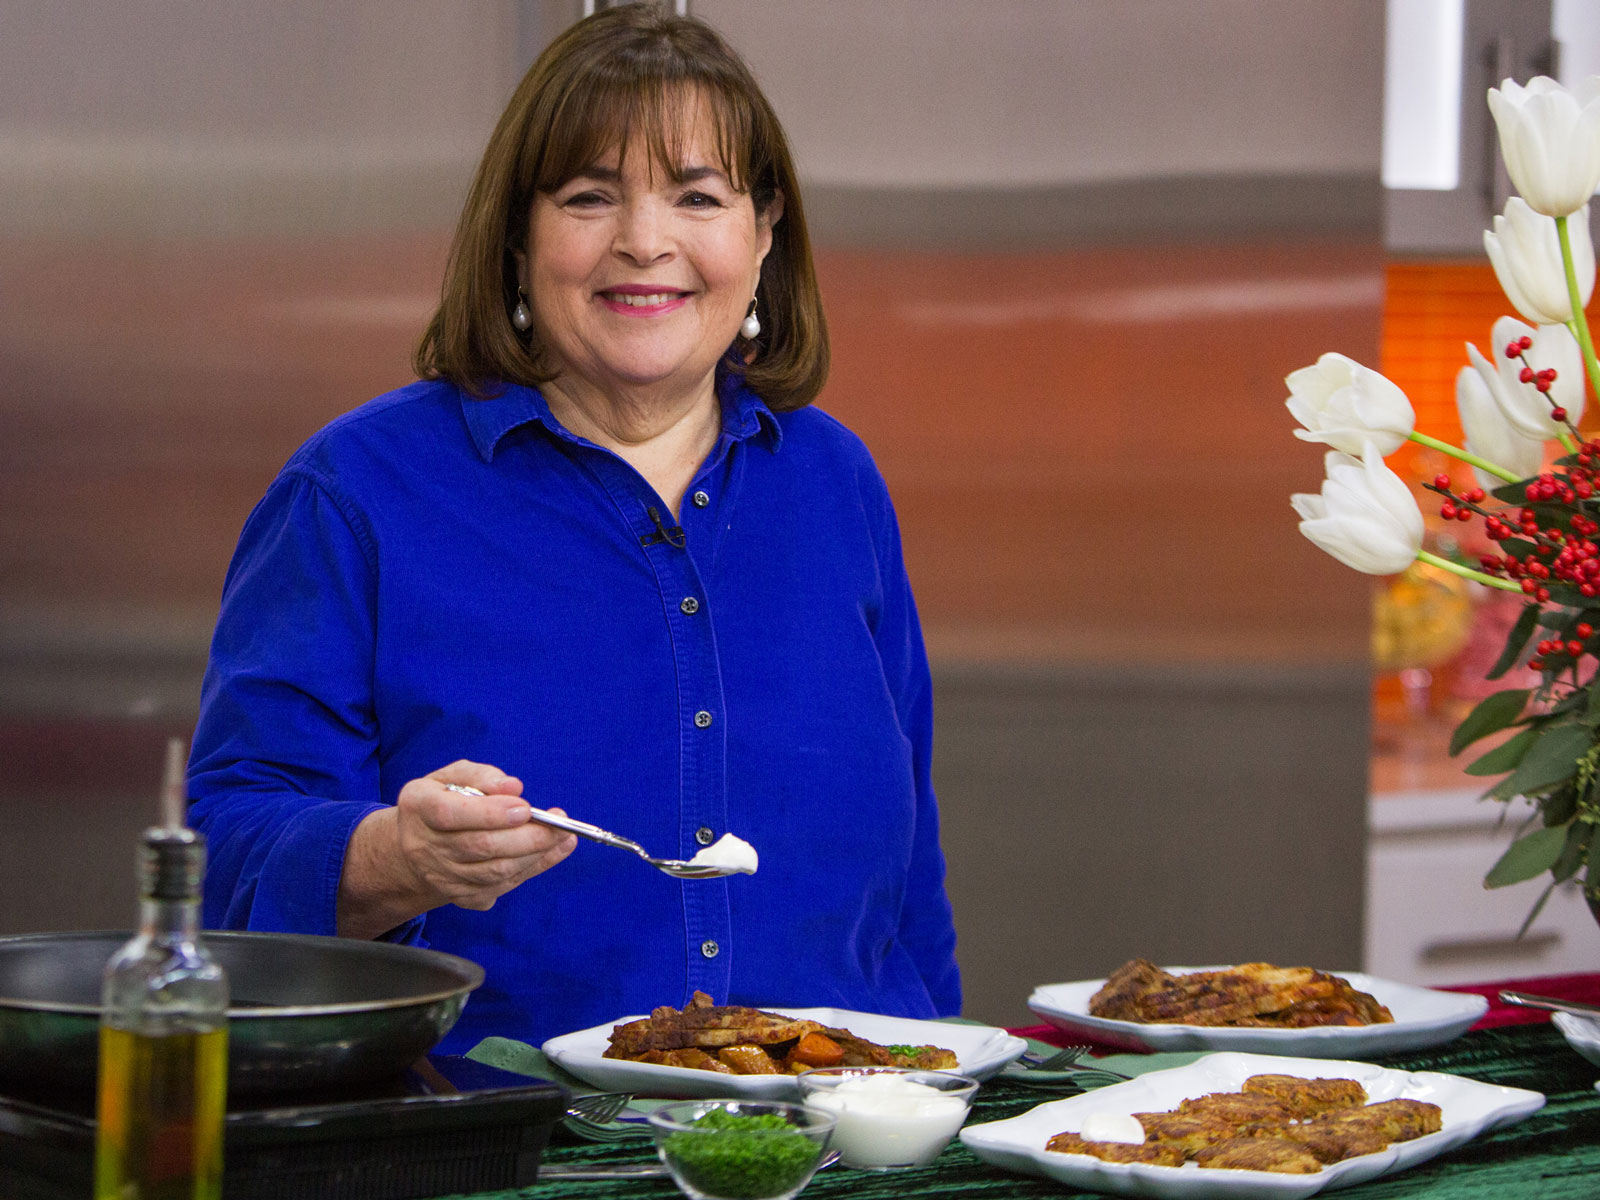 Ina Garten in a blue shirt holding a spoonful of food